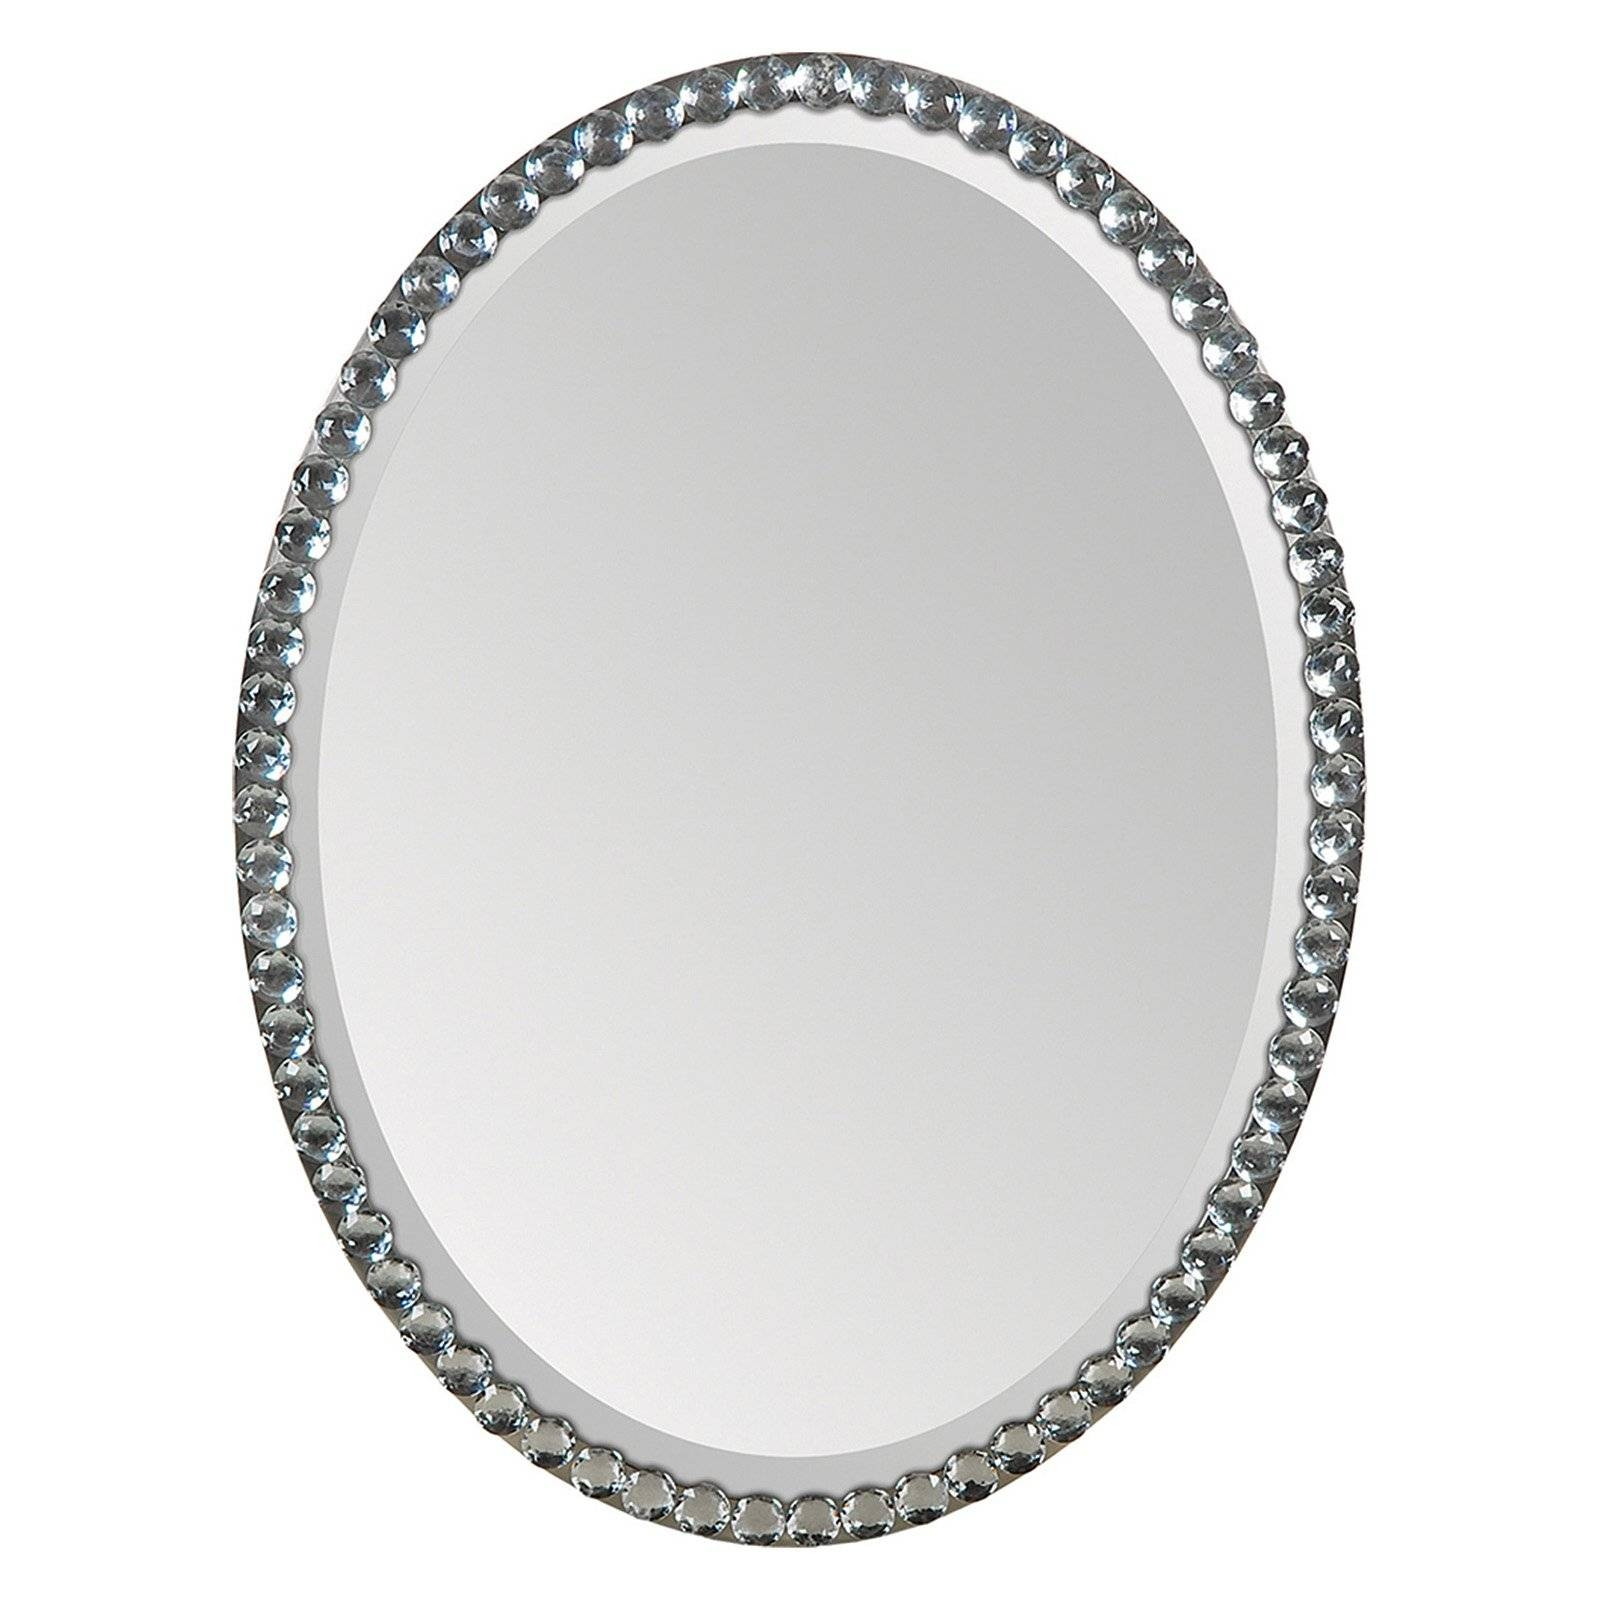 Ren-Wil Oval Crystal Framed Wall Mirror - 24W X 32H In. - Walmart pertaining to Silver Oval Wall Mirrors (Image 18 of 25)